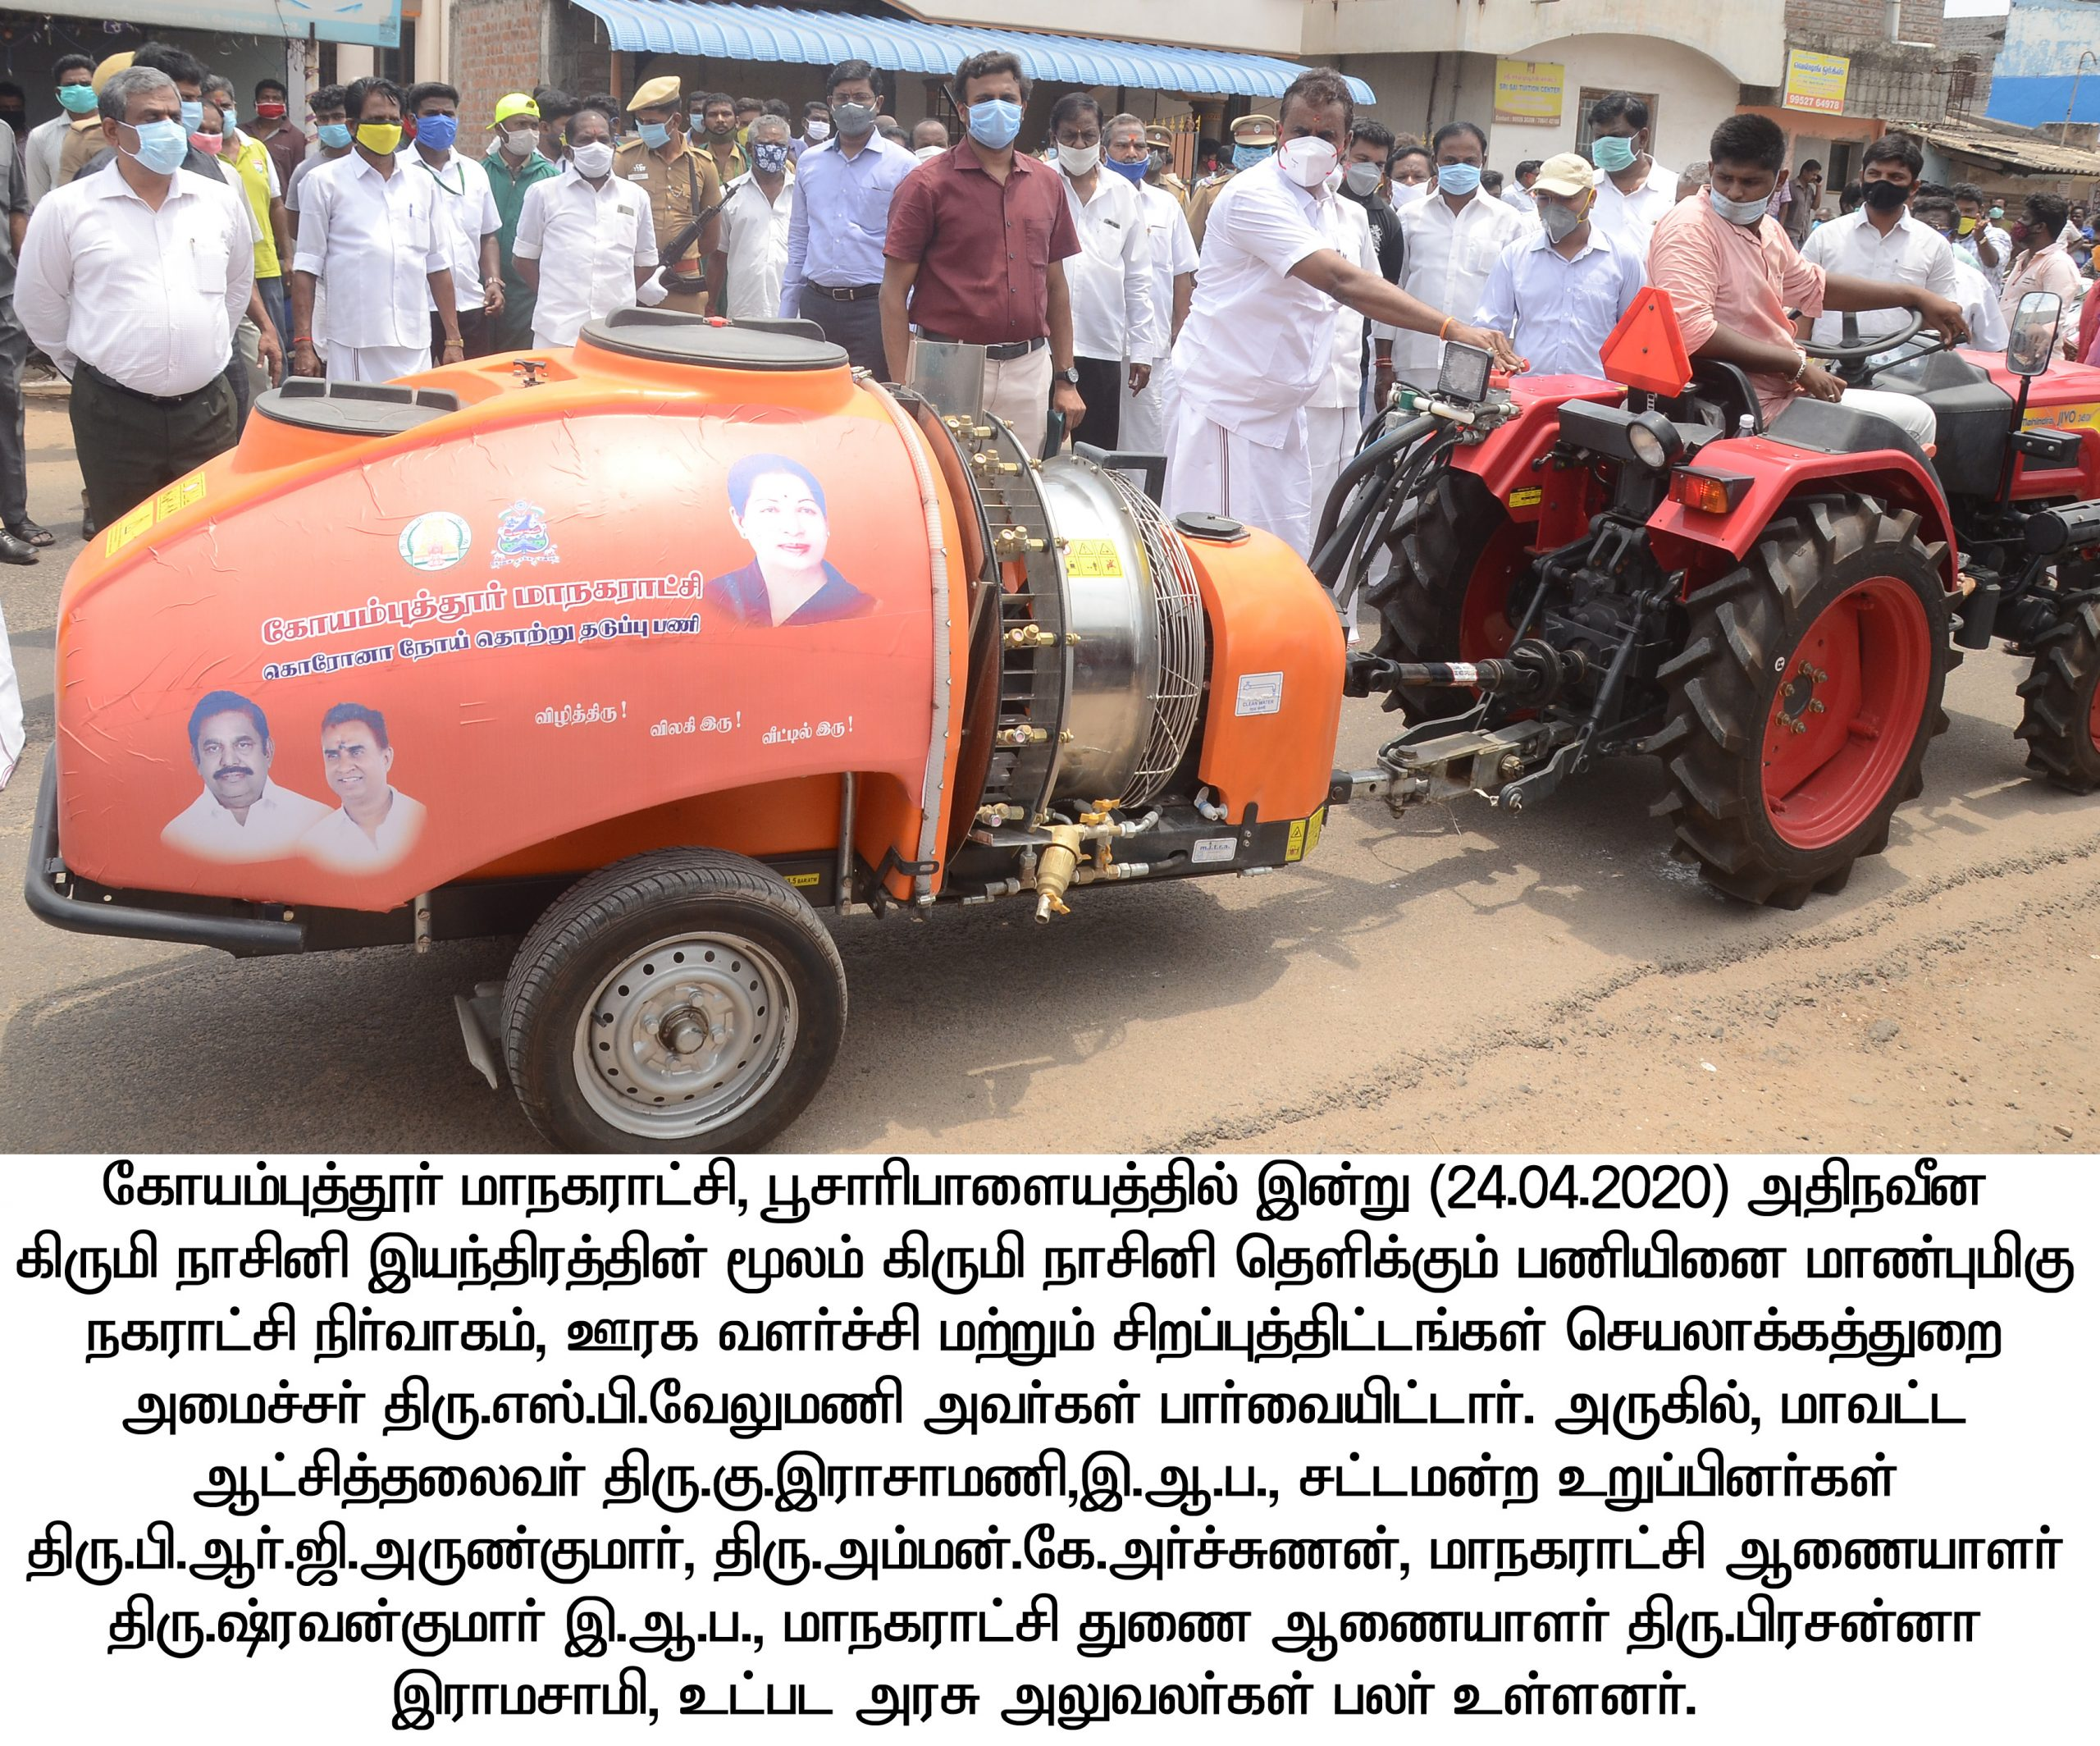 Hon'ble Minister for Municipal Administration, Rural Development inspected new Disinfection sprayer machine